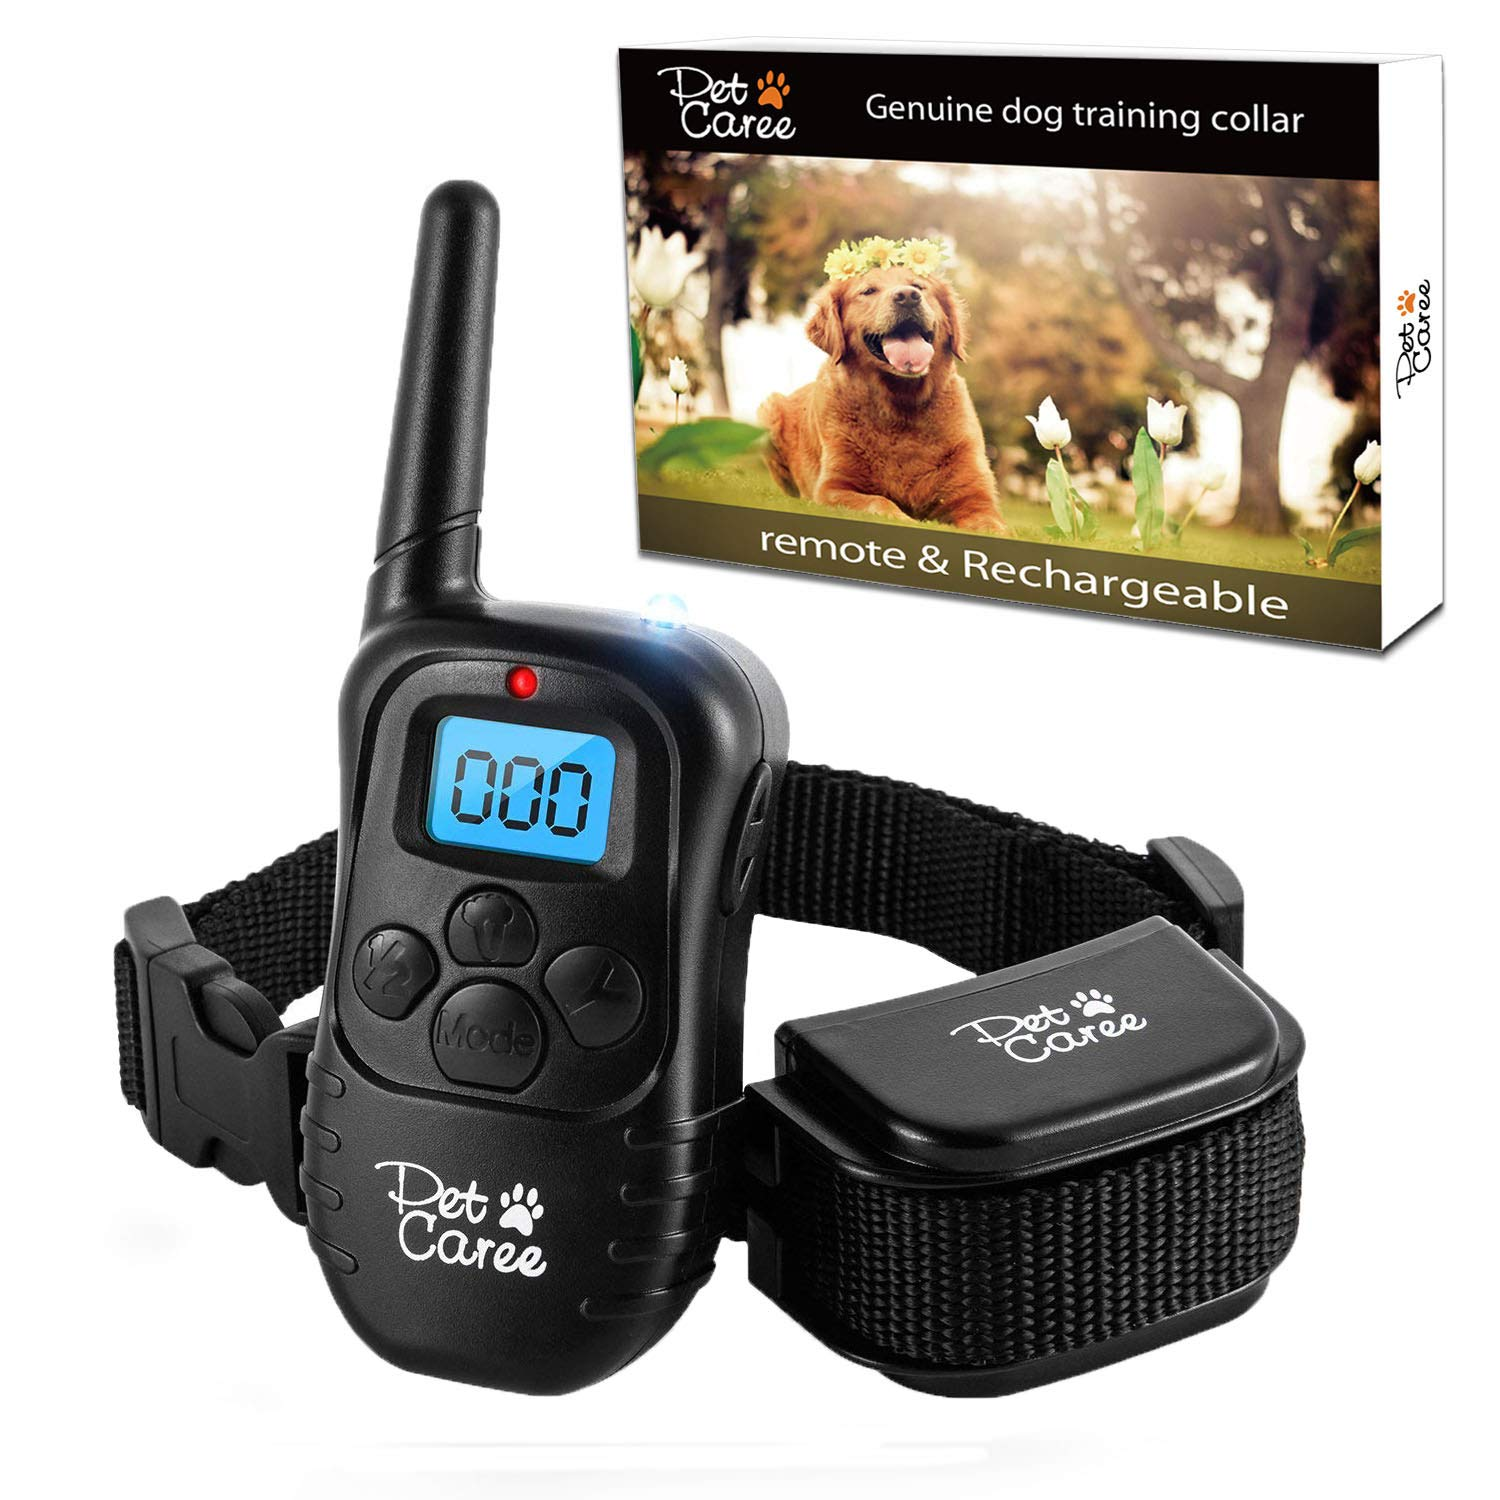 instecho Dog Training Collar, 100% Rainproof Rechargeable Electronic Remote Dog Shock Collar 330 Yards with Beep/Vibrating/Shock Electric E-Collar(Black)